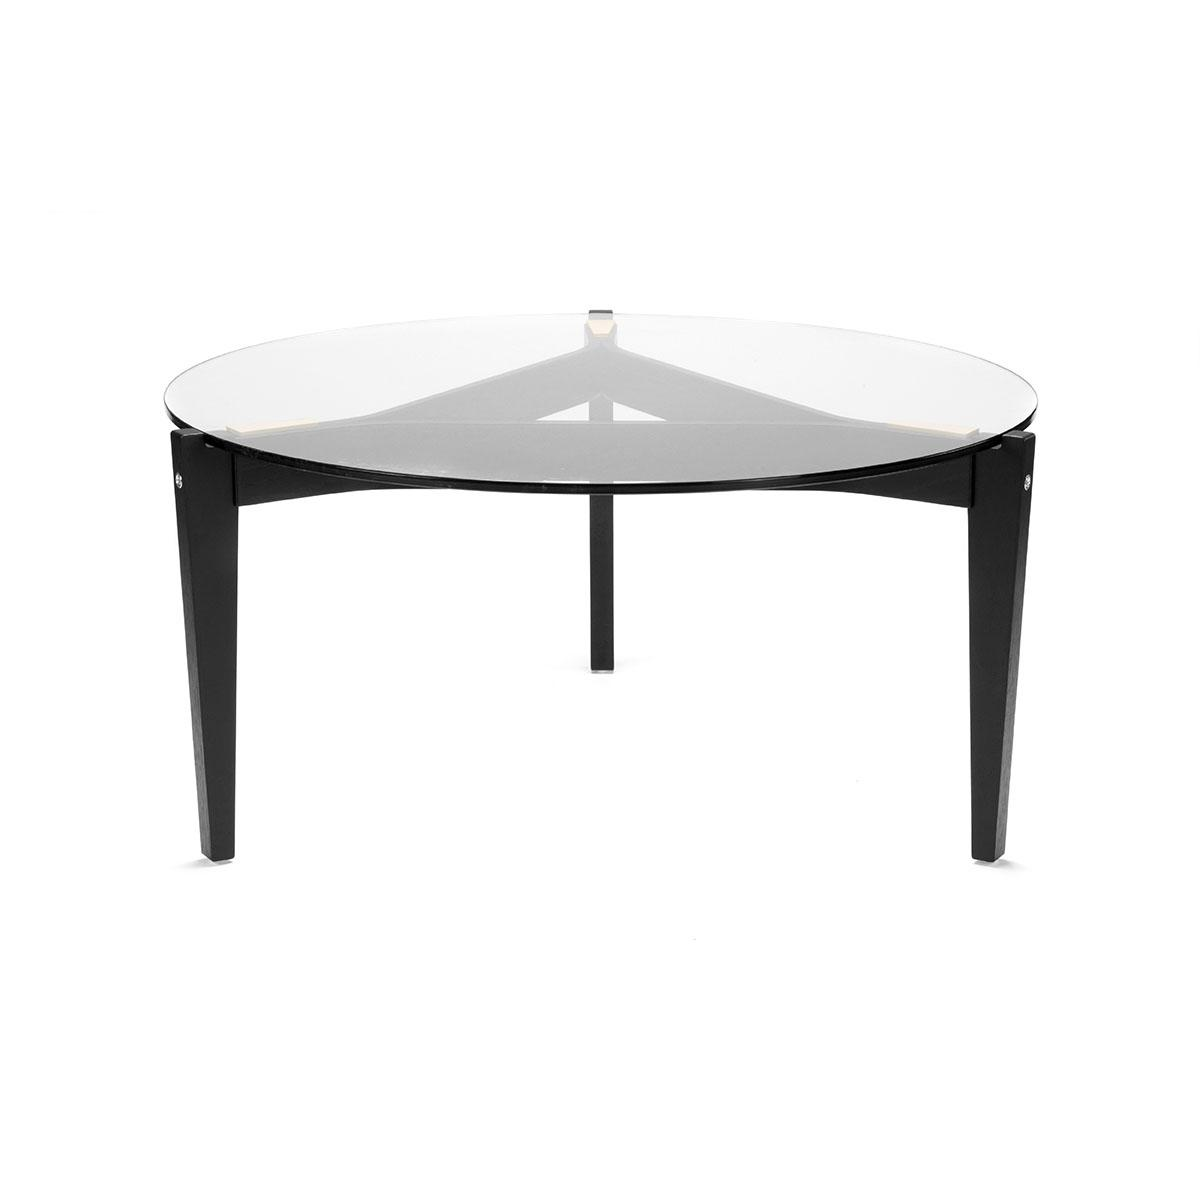 Getama 465 Coffee table _1200_0006_465 Sofabord A